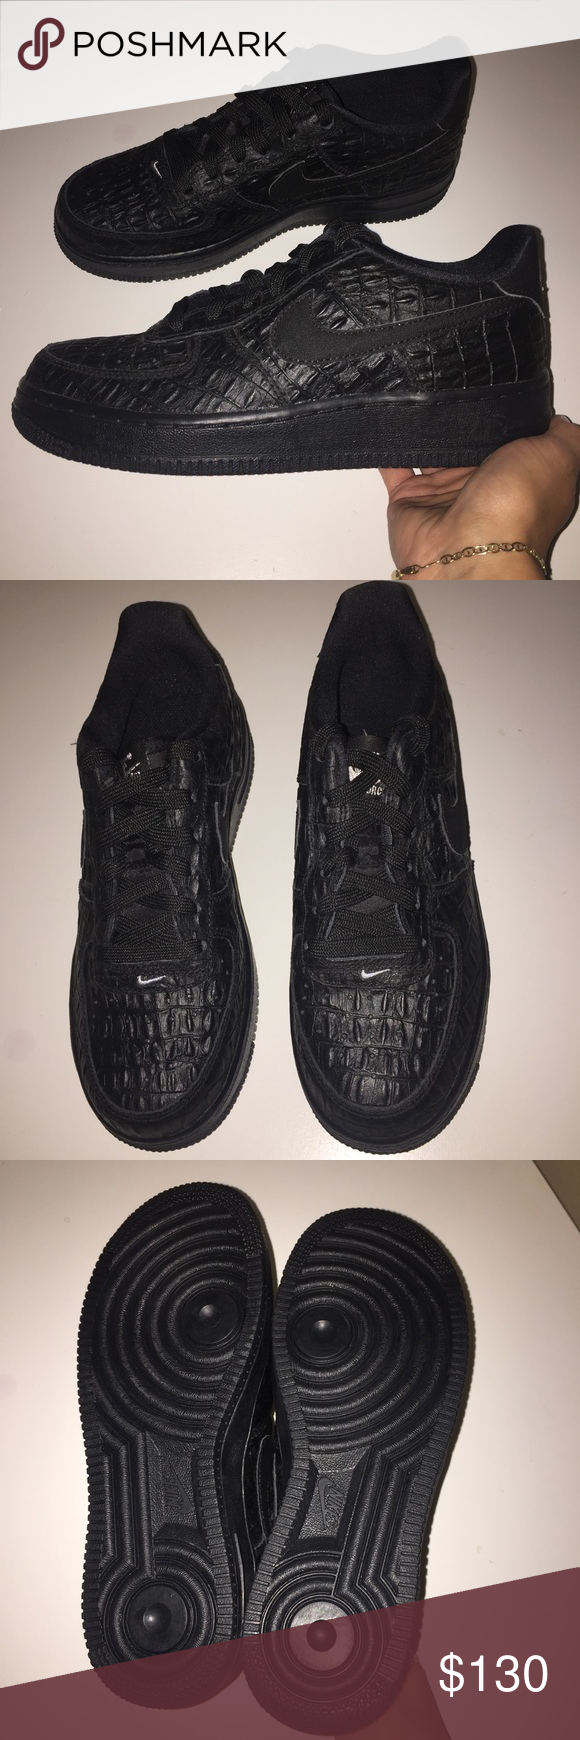 save off d6aa5 bf0c9 ... coupon for nike air force 1 af1 black gator skin sneakers new without  box. never